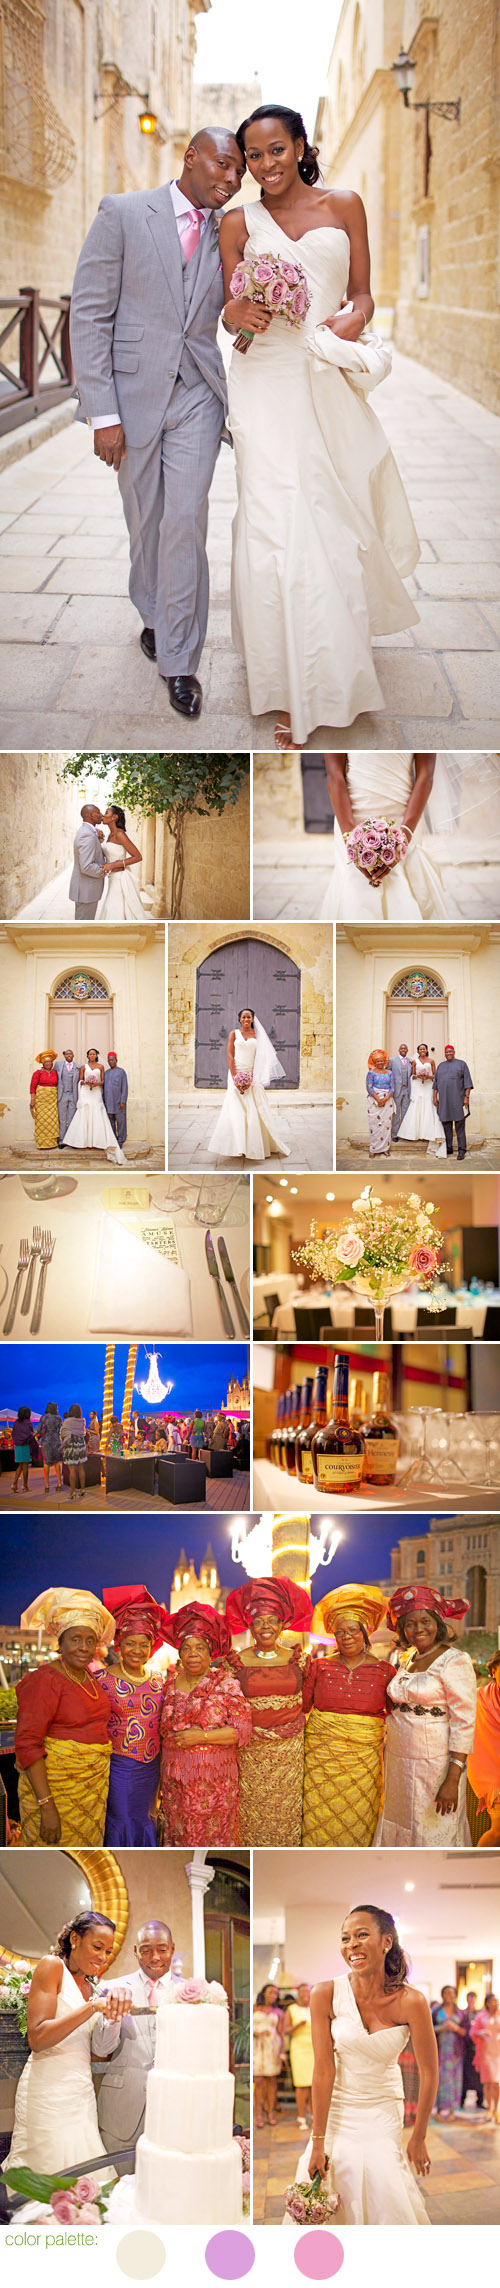 Mdina, Malta wedding at The Villa Brasserie, photos by Melissa O'Connell of Fresh In Love Photography